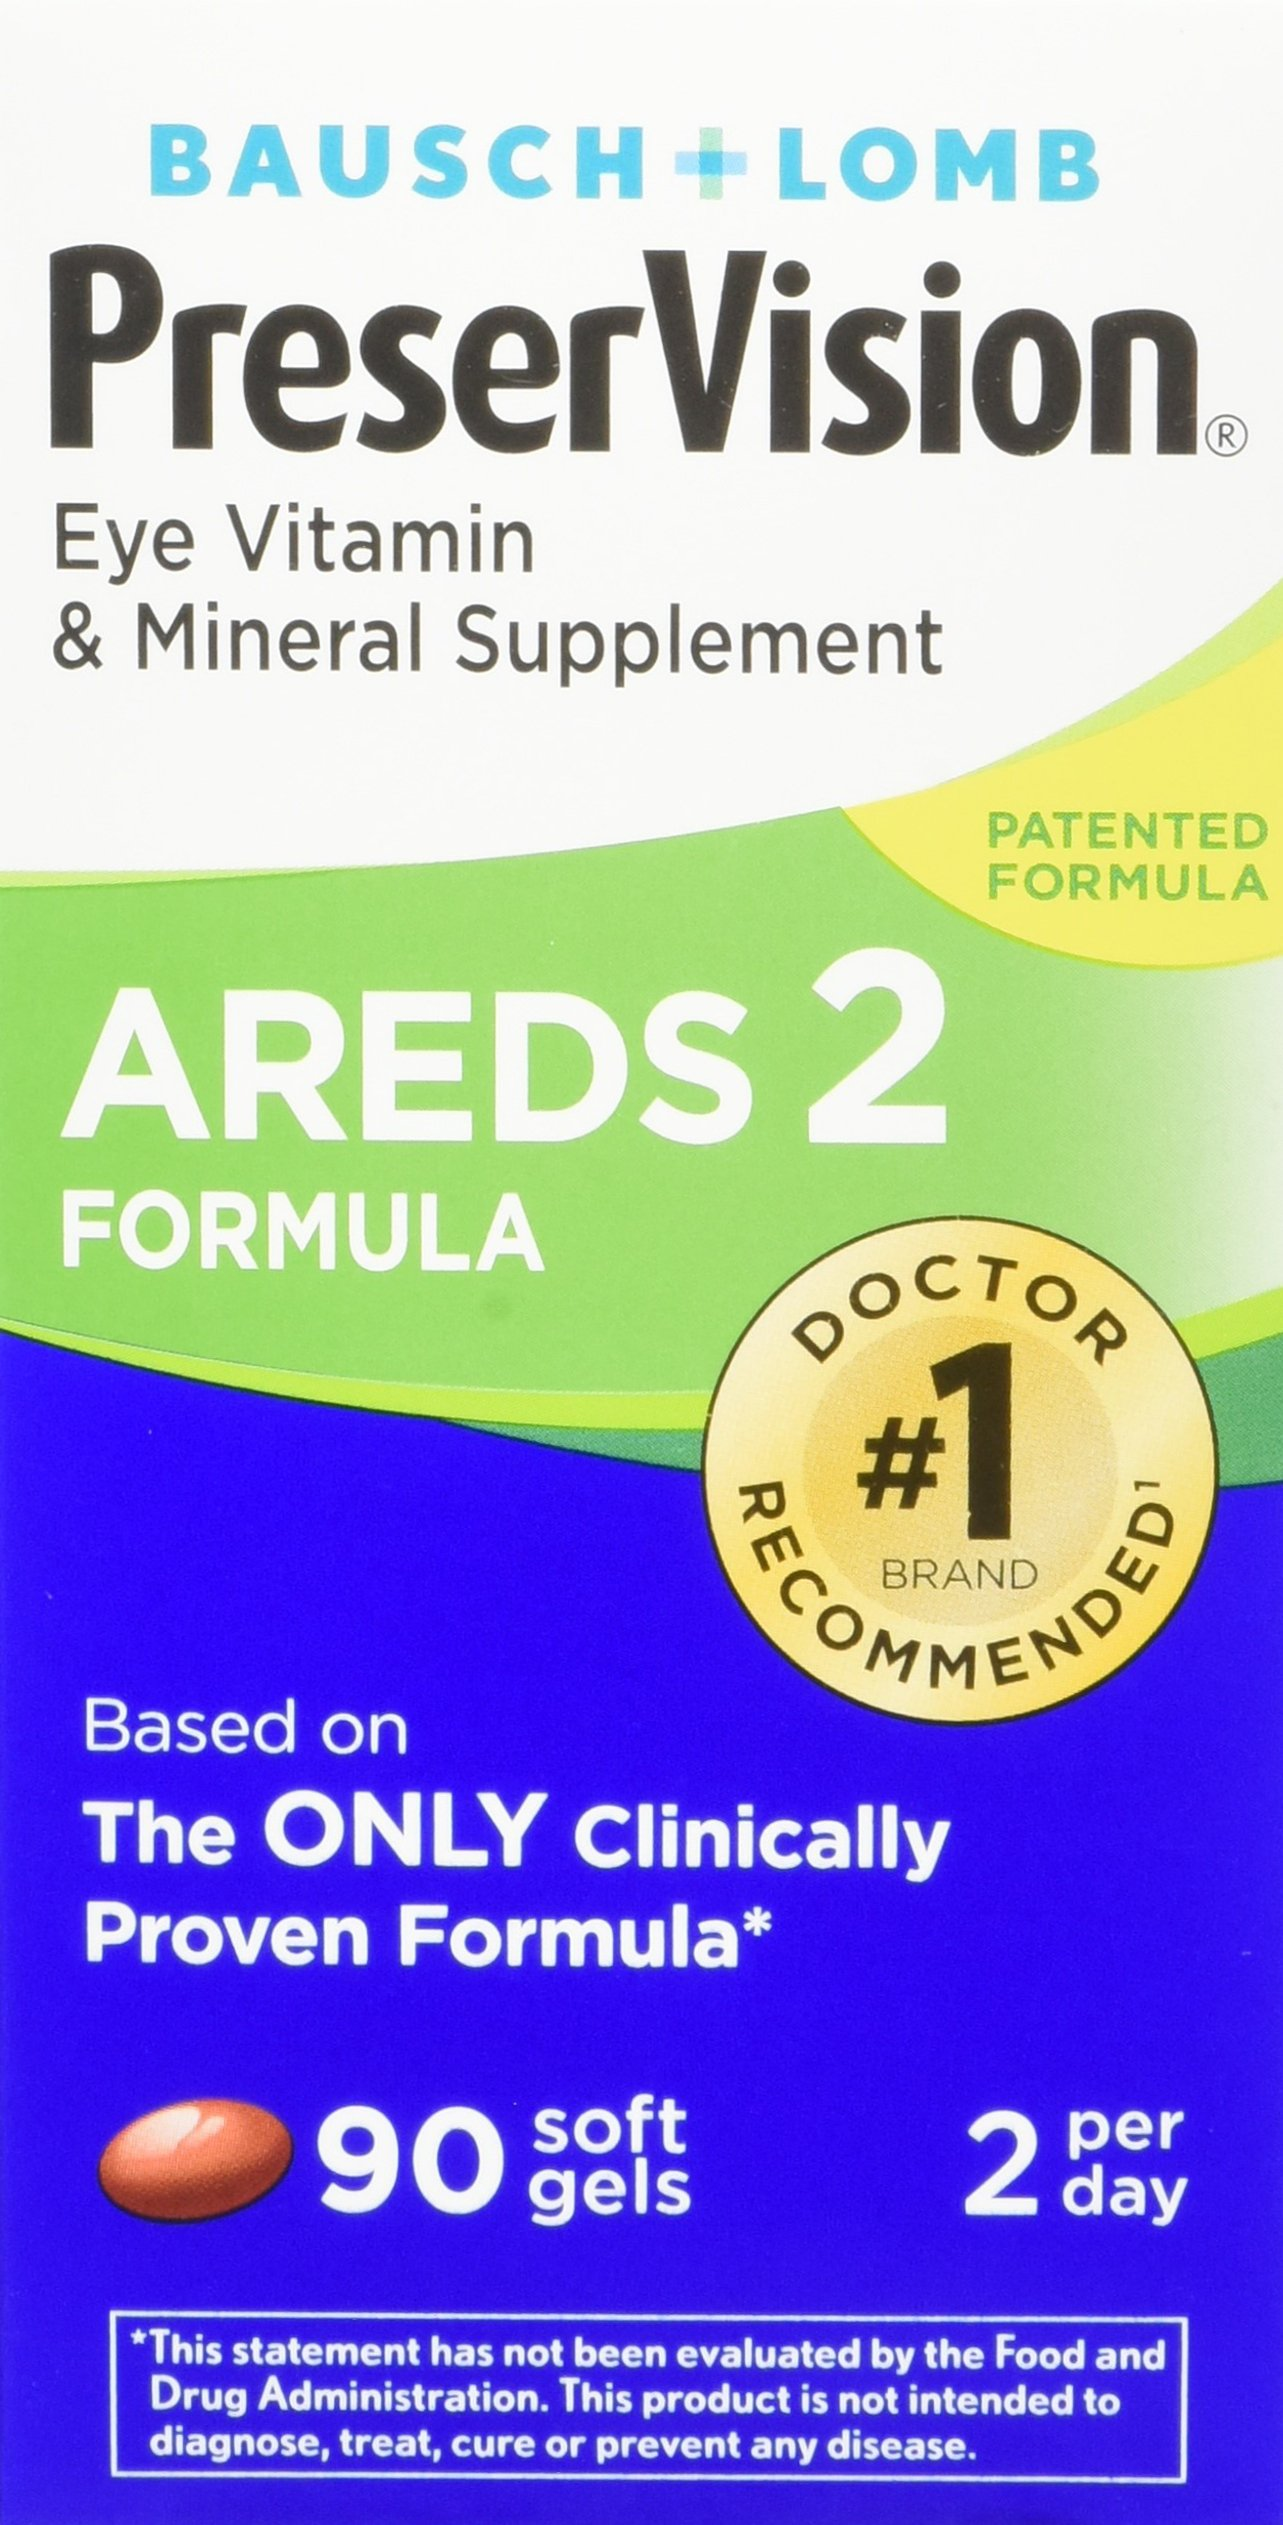 PreserVision AREDS 2 Eye Vitamin & Mineral Supplement, Contains Lutein, Vitamin C, Zeaxanthin, Zinc & Vitamin E, 90 Softgels (Packaging May Vary)